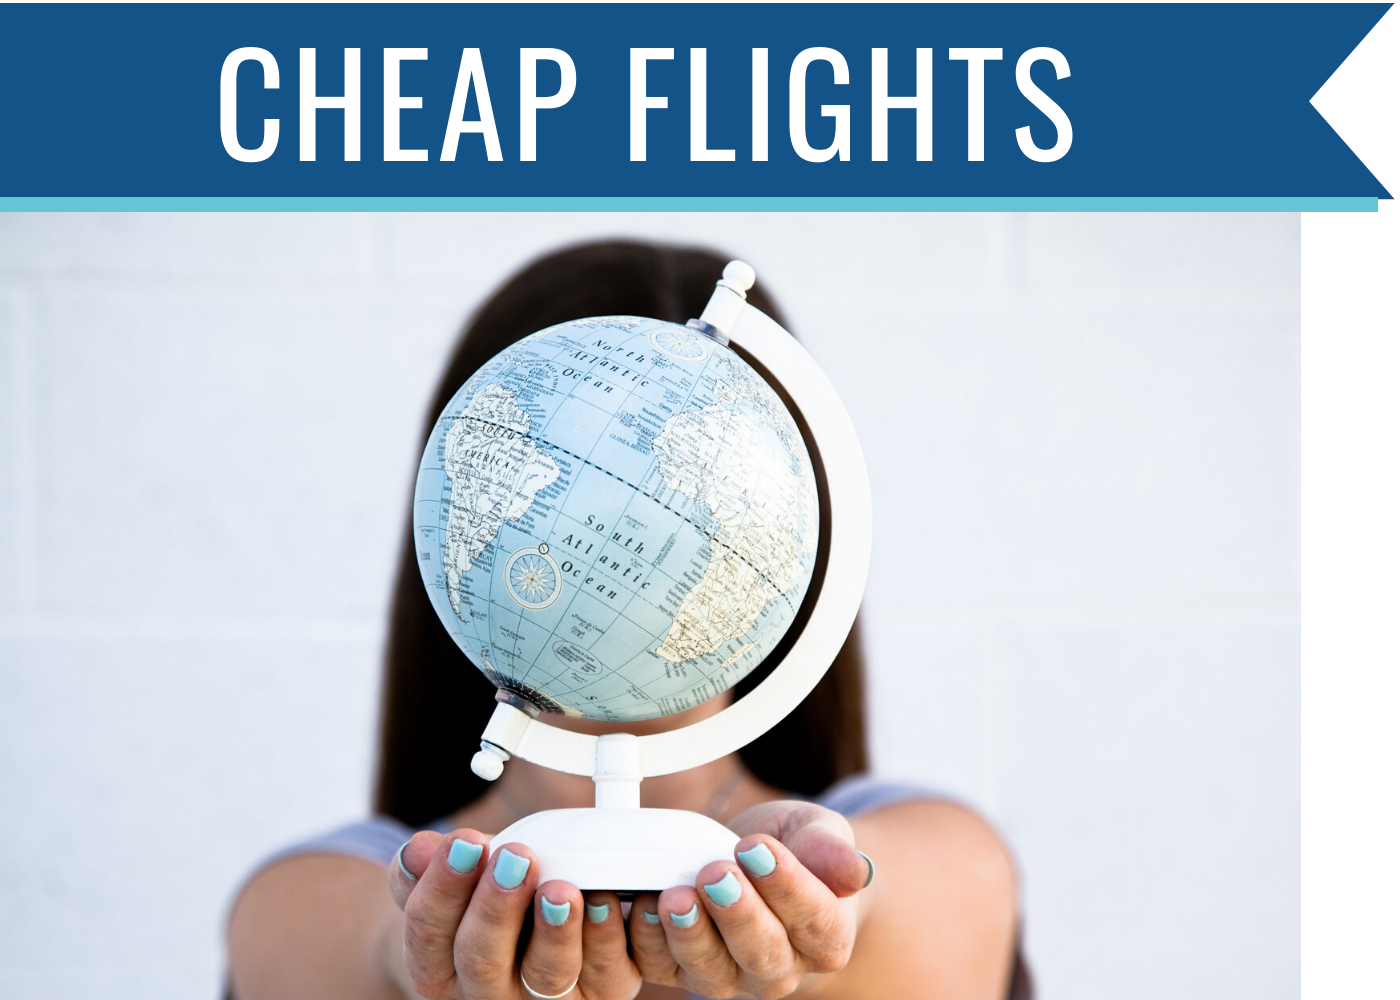 Find amazing deals on flights for your next vacation!